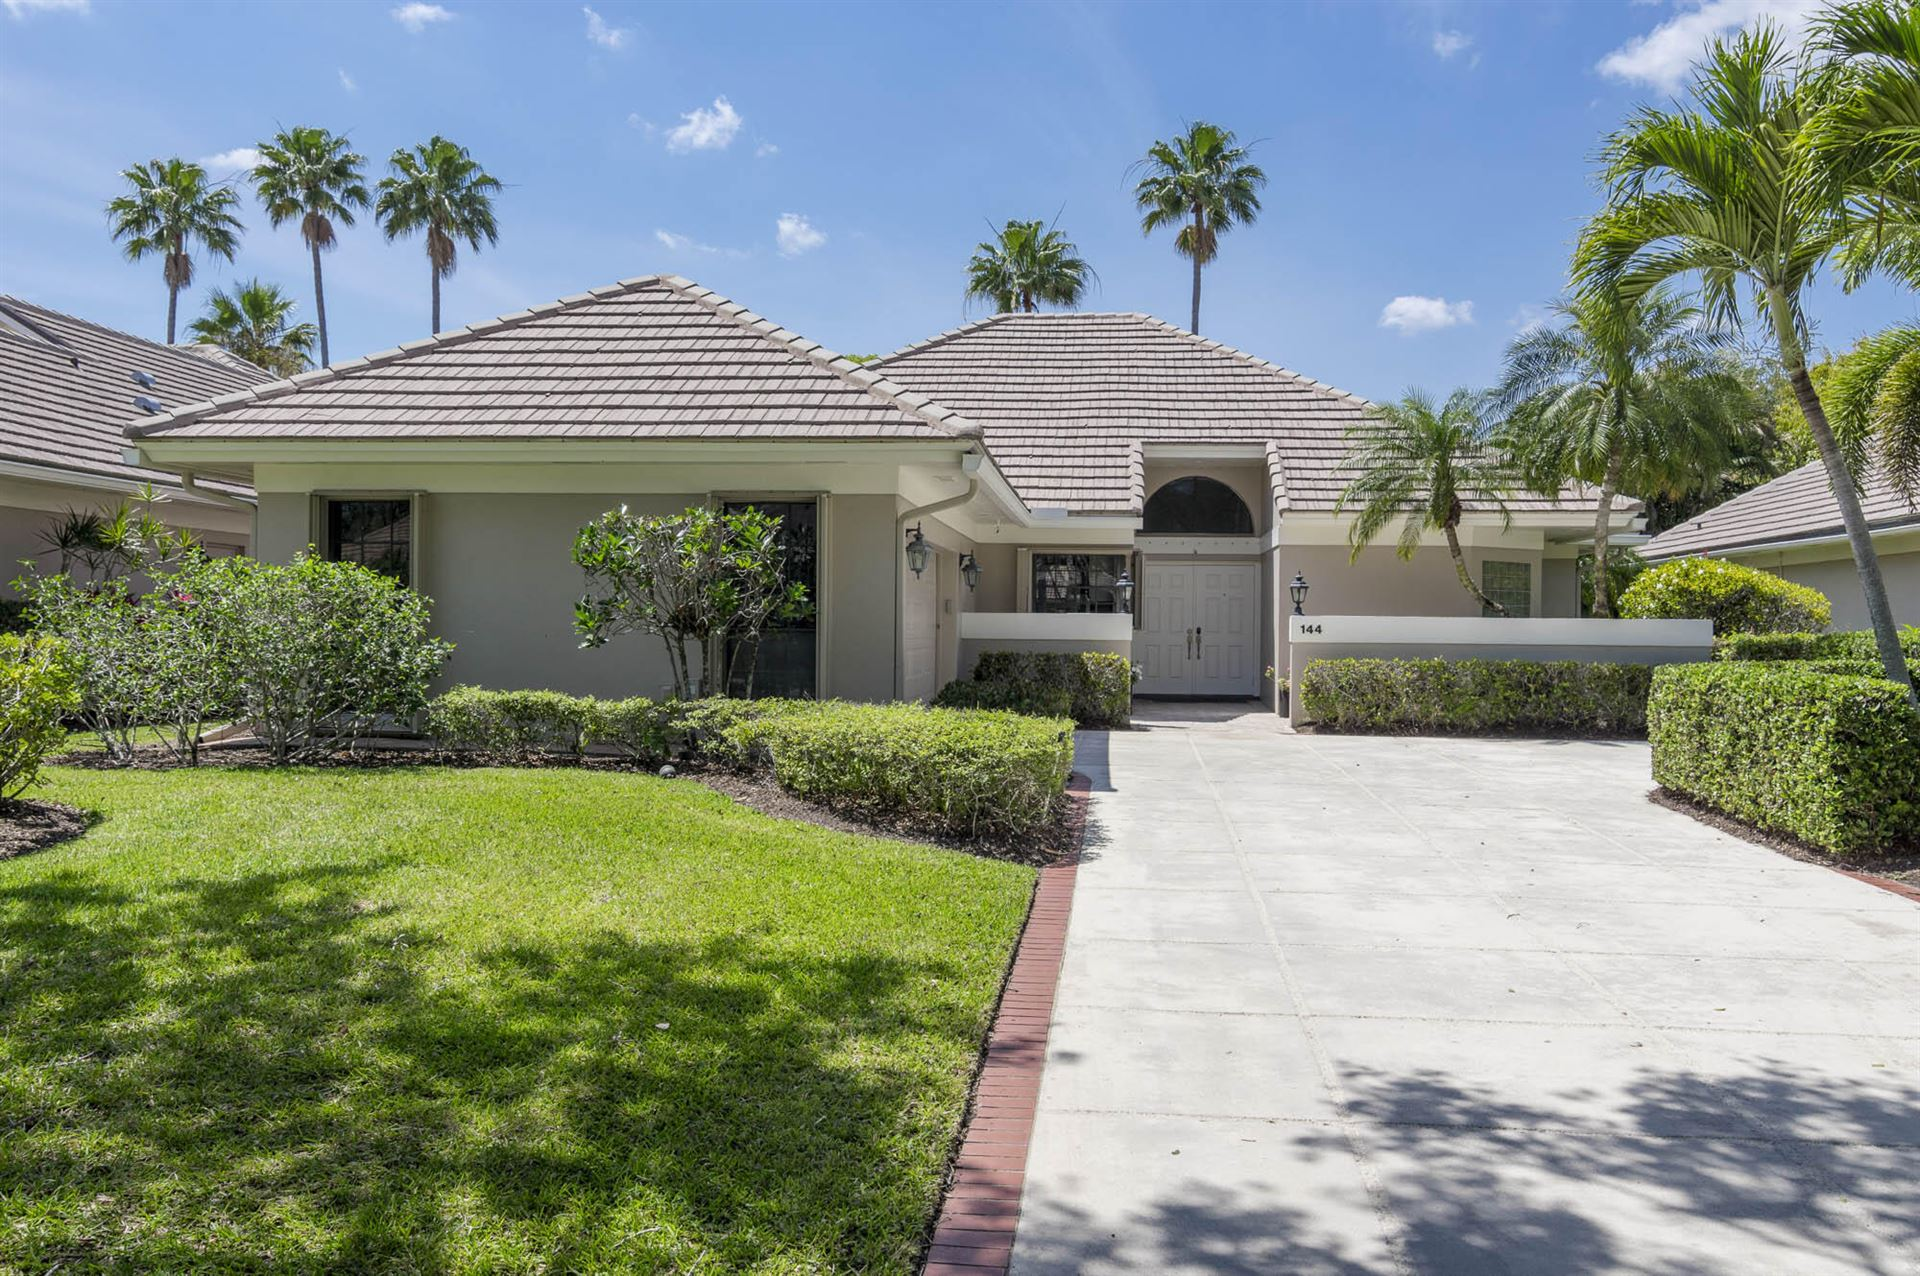 Photo of 144 Coventry Place, Palm Beach Gardens, FL 33418 (MLS # RX-10709672)